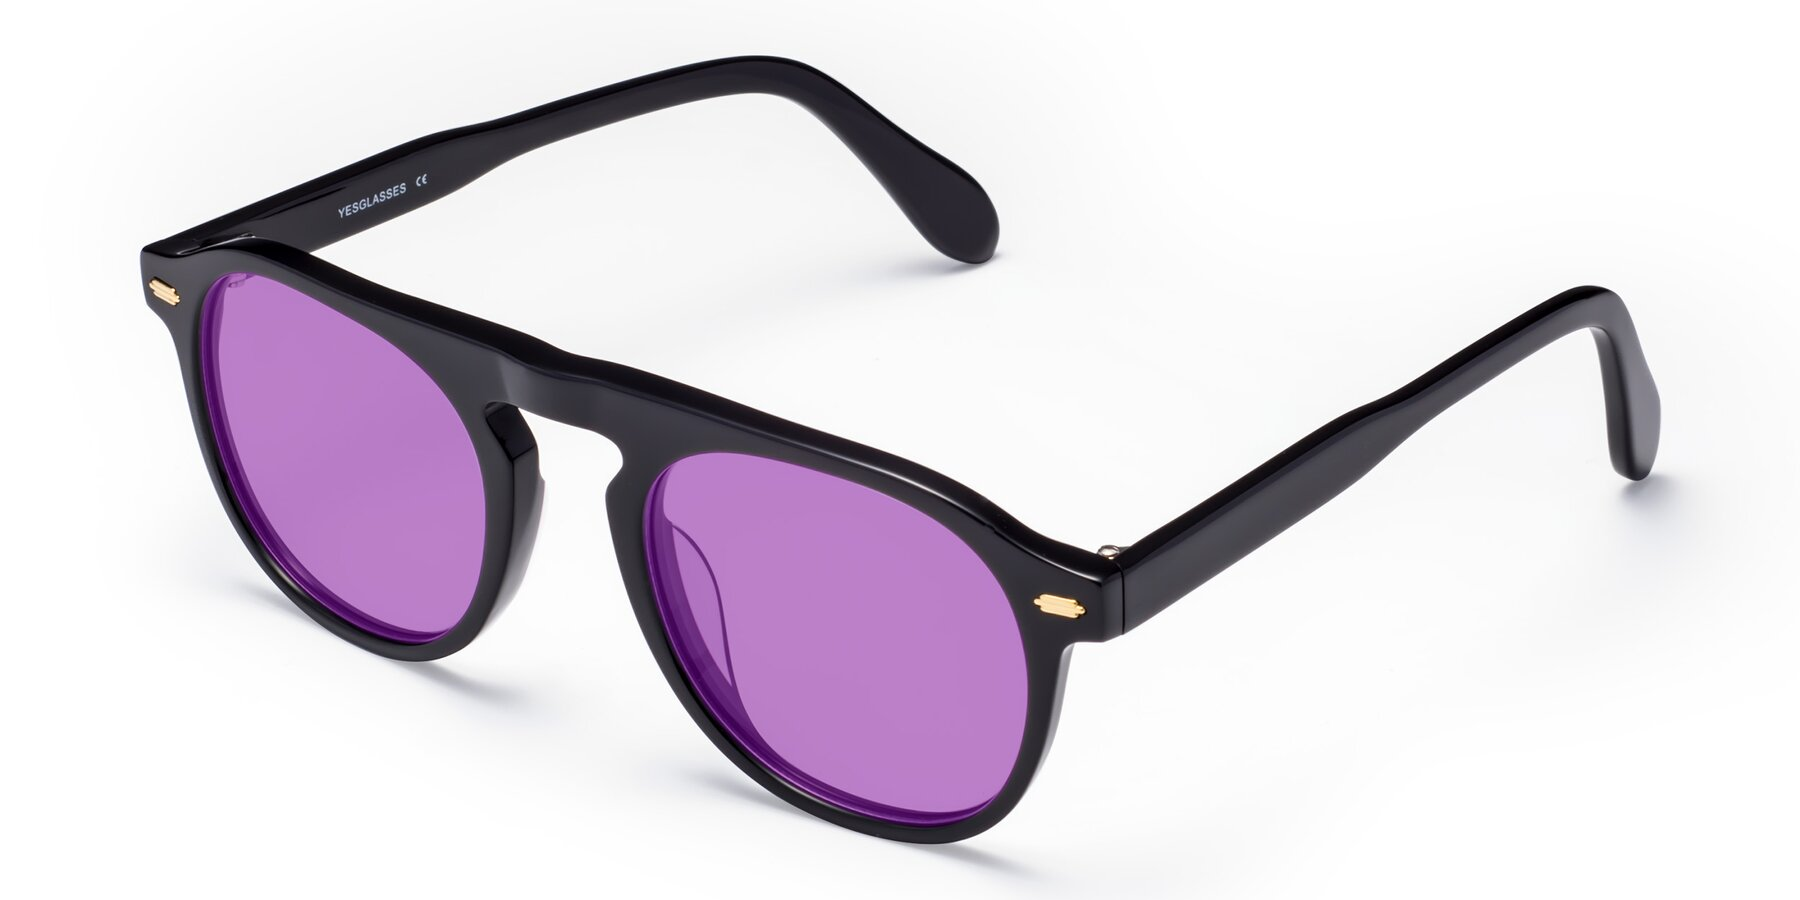 Angle of Mufasa in Black with Medium Purple Tinted Lenses